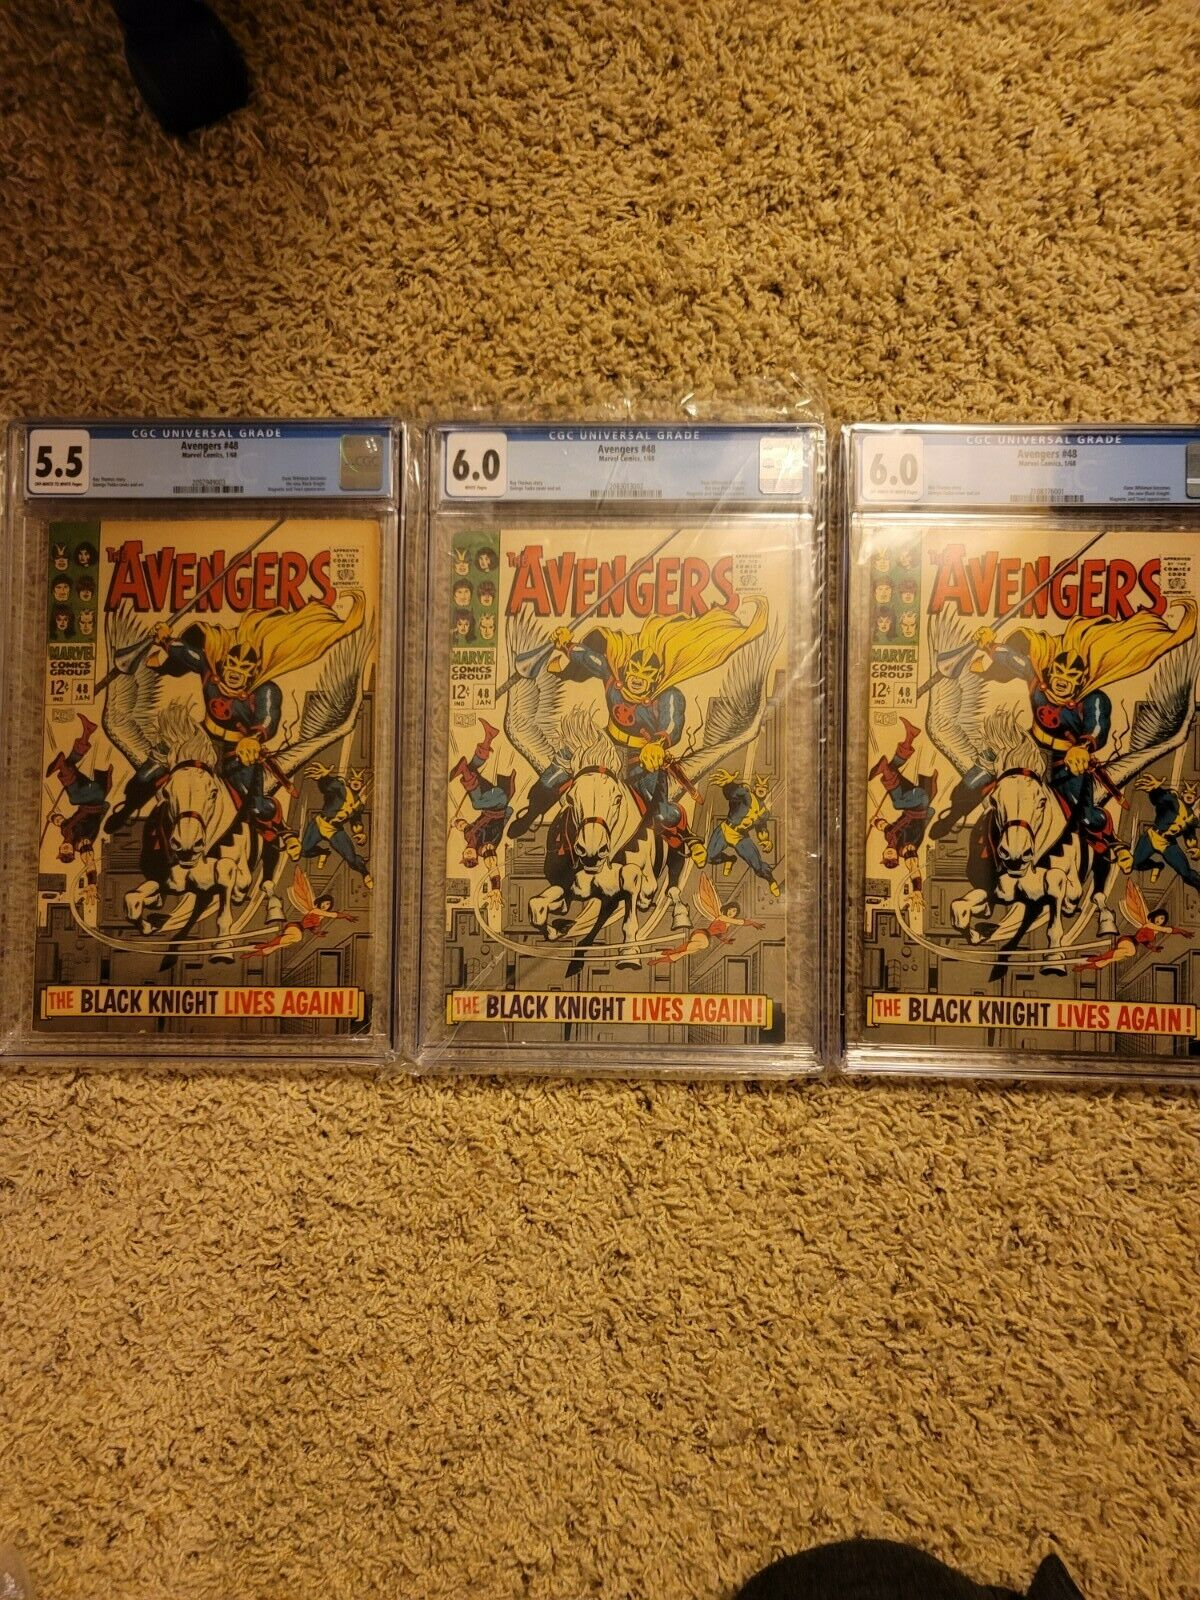 Avengers 48 CGC lot of 3 books 60 60 and 55